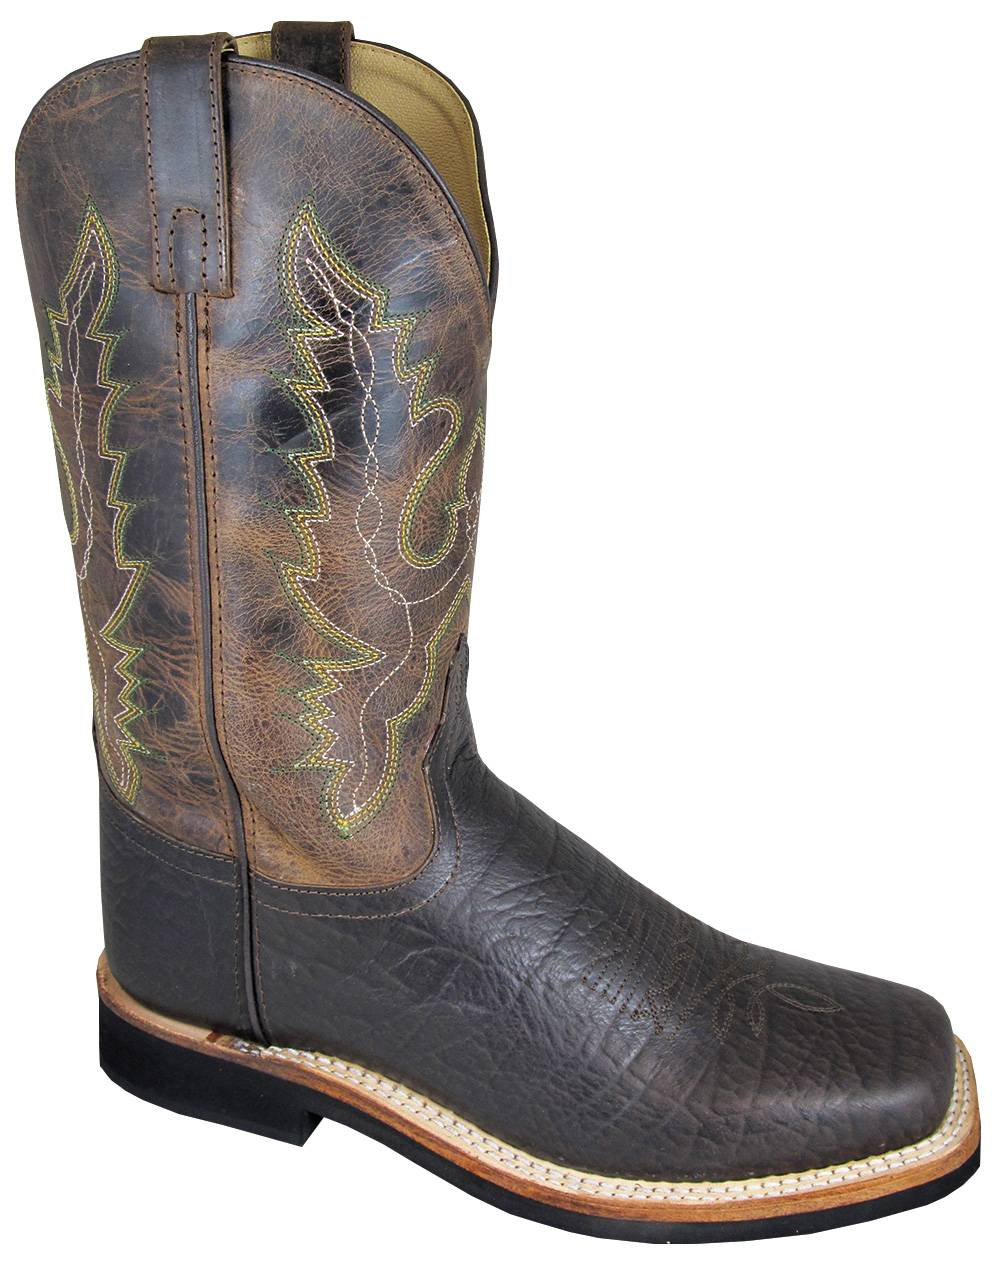 Smoky Mountain Roger Crackle Leather Square Toe Boots - Mens